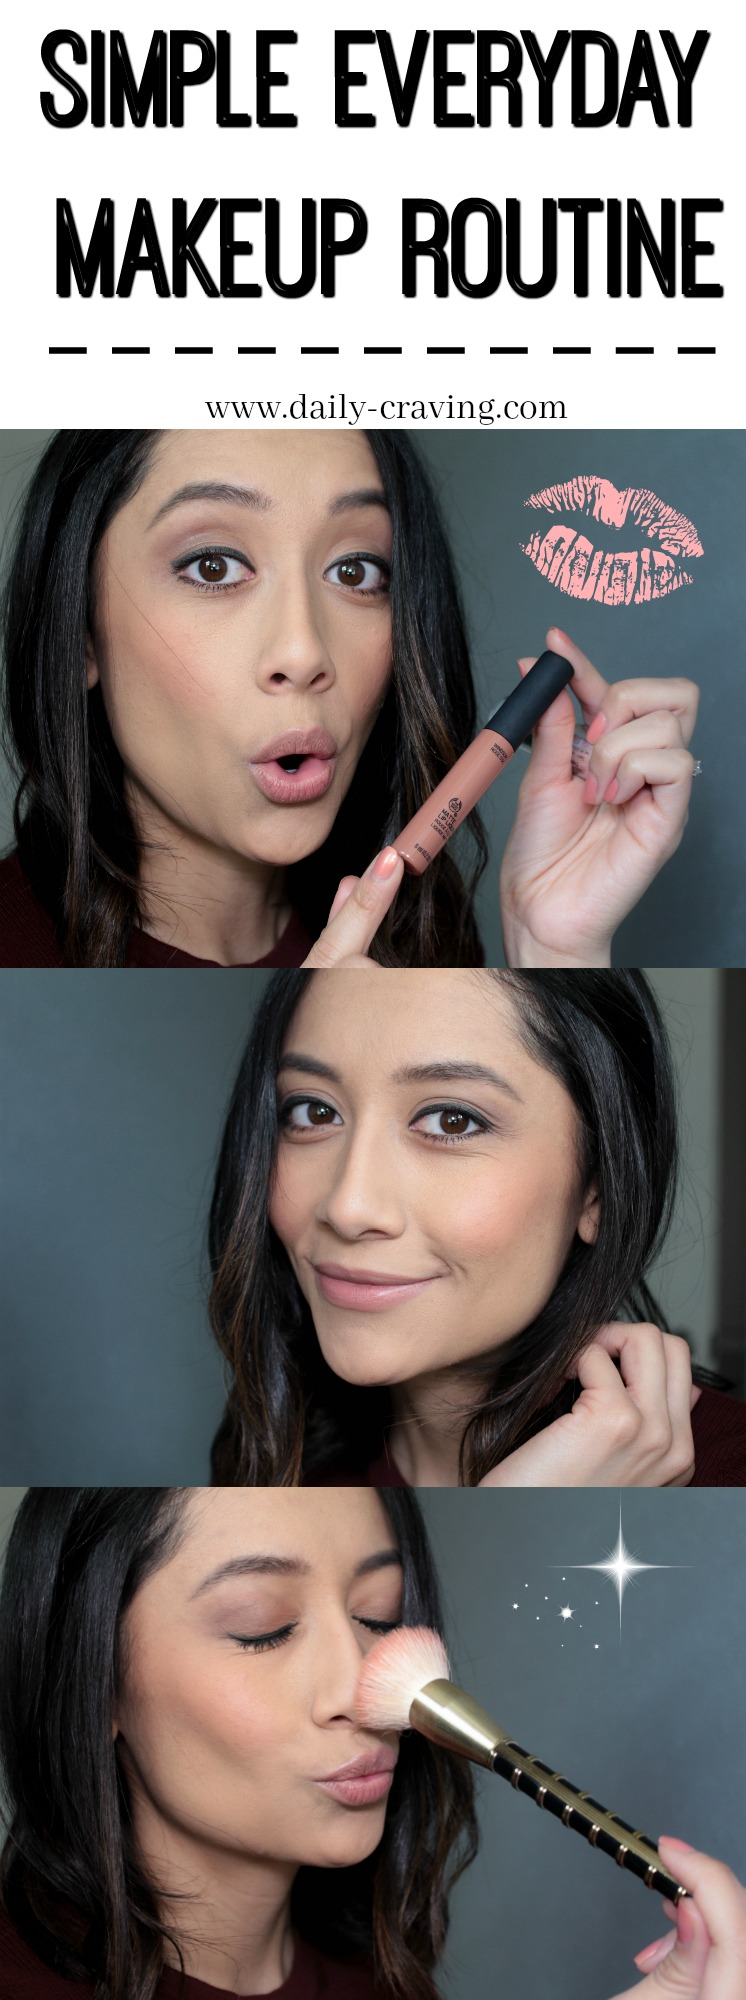 Lifestyle blogger Lilly Beltran of Daily Craving shares her daily makeup routine